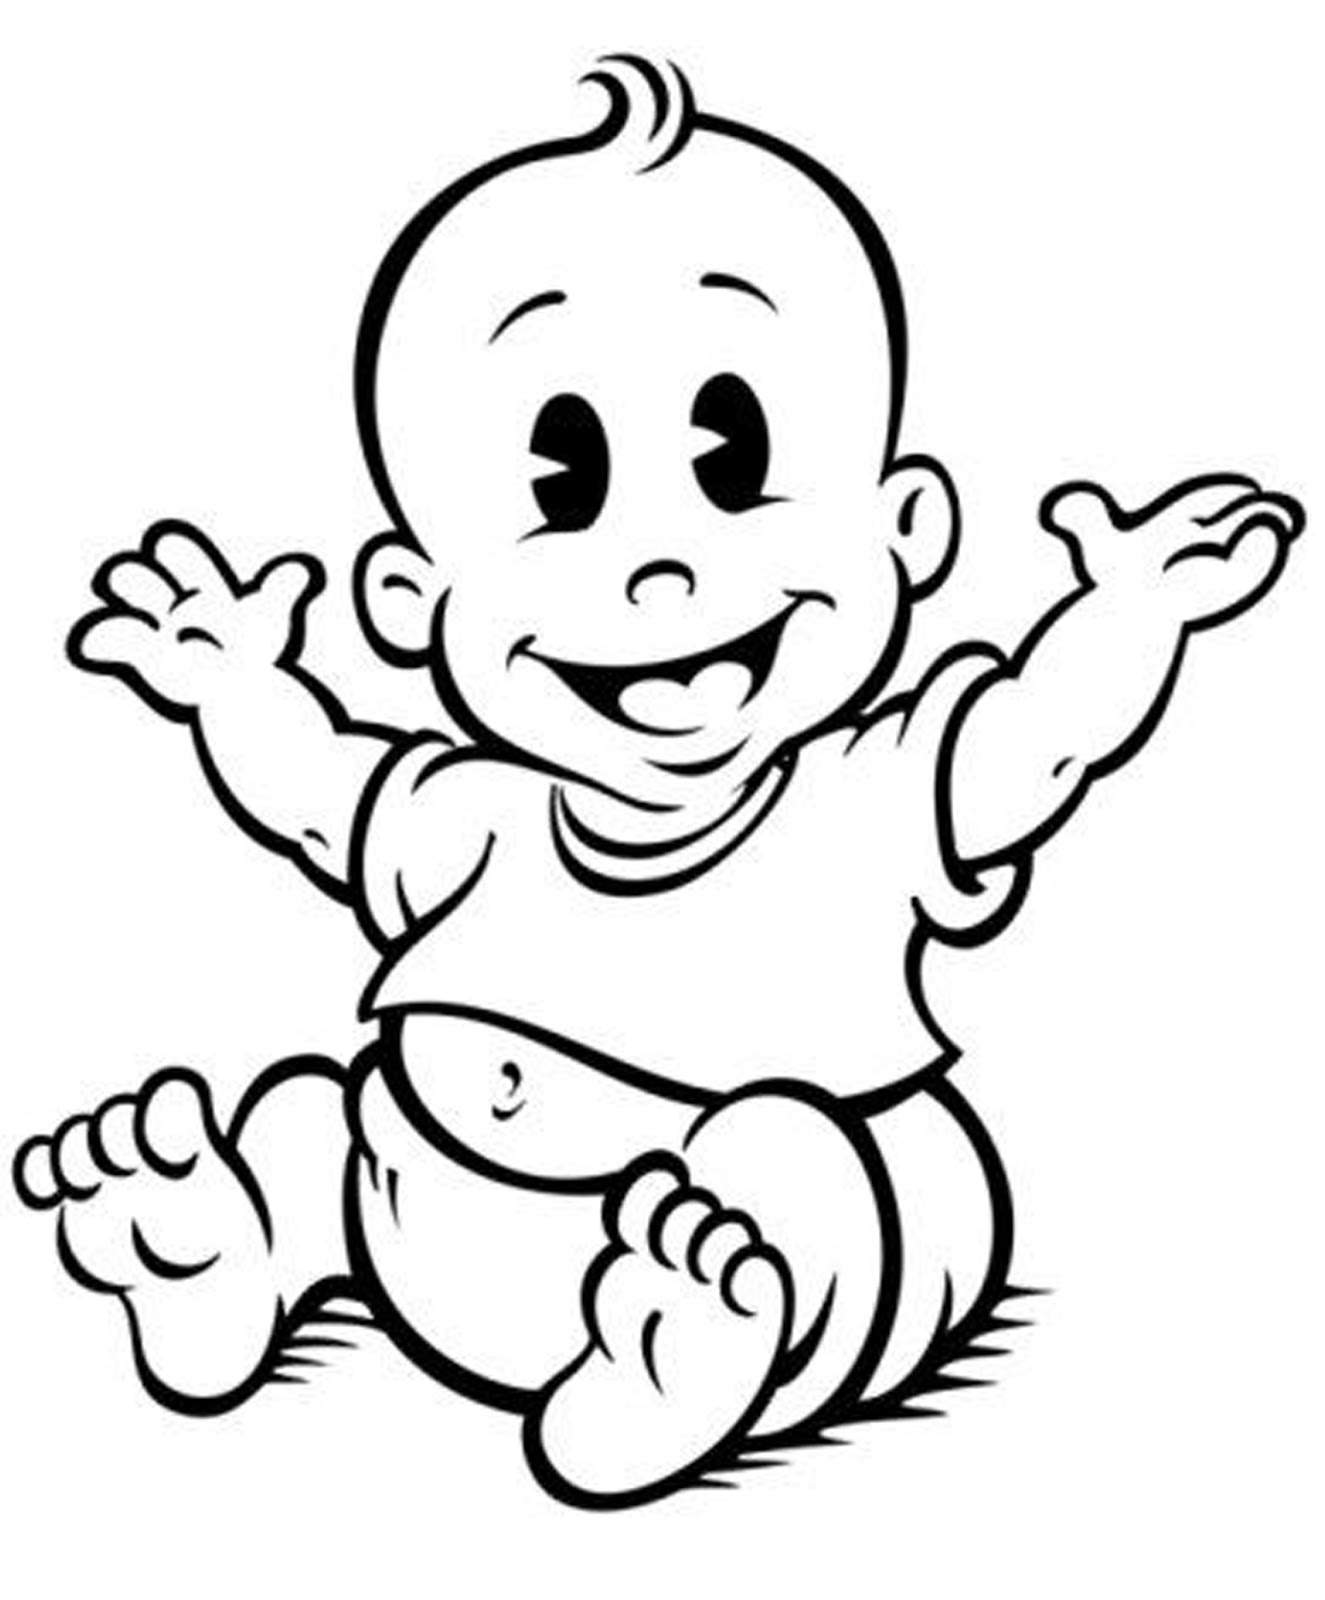 free baby clipart black and white